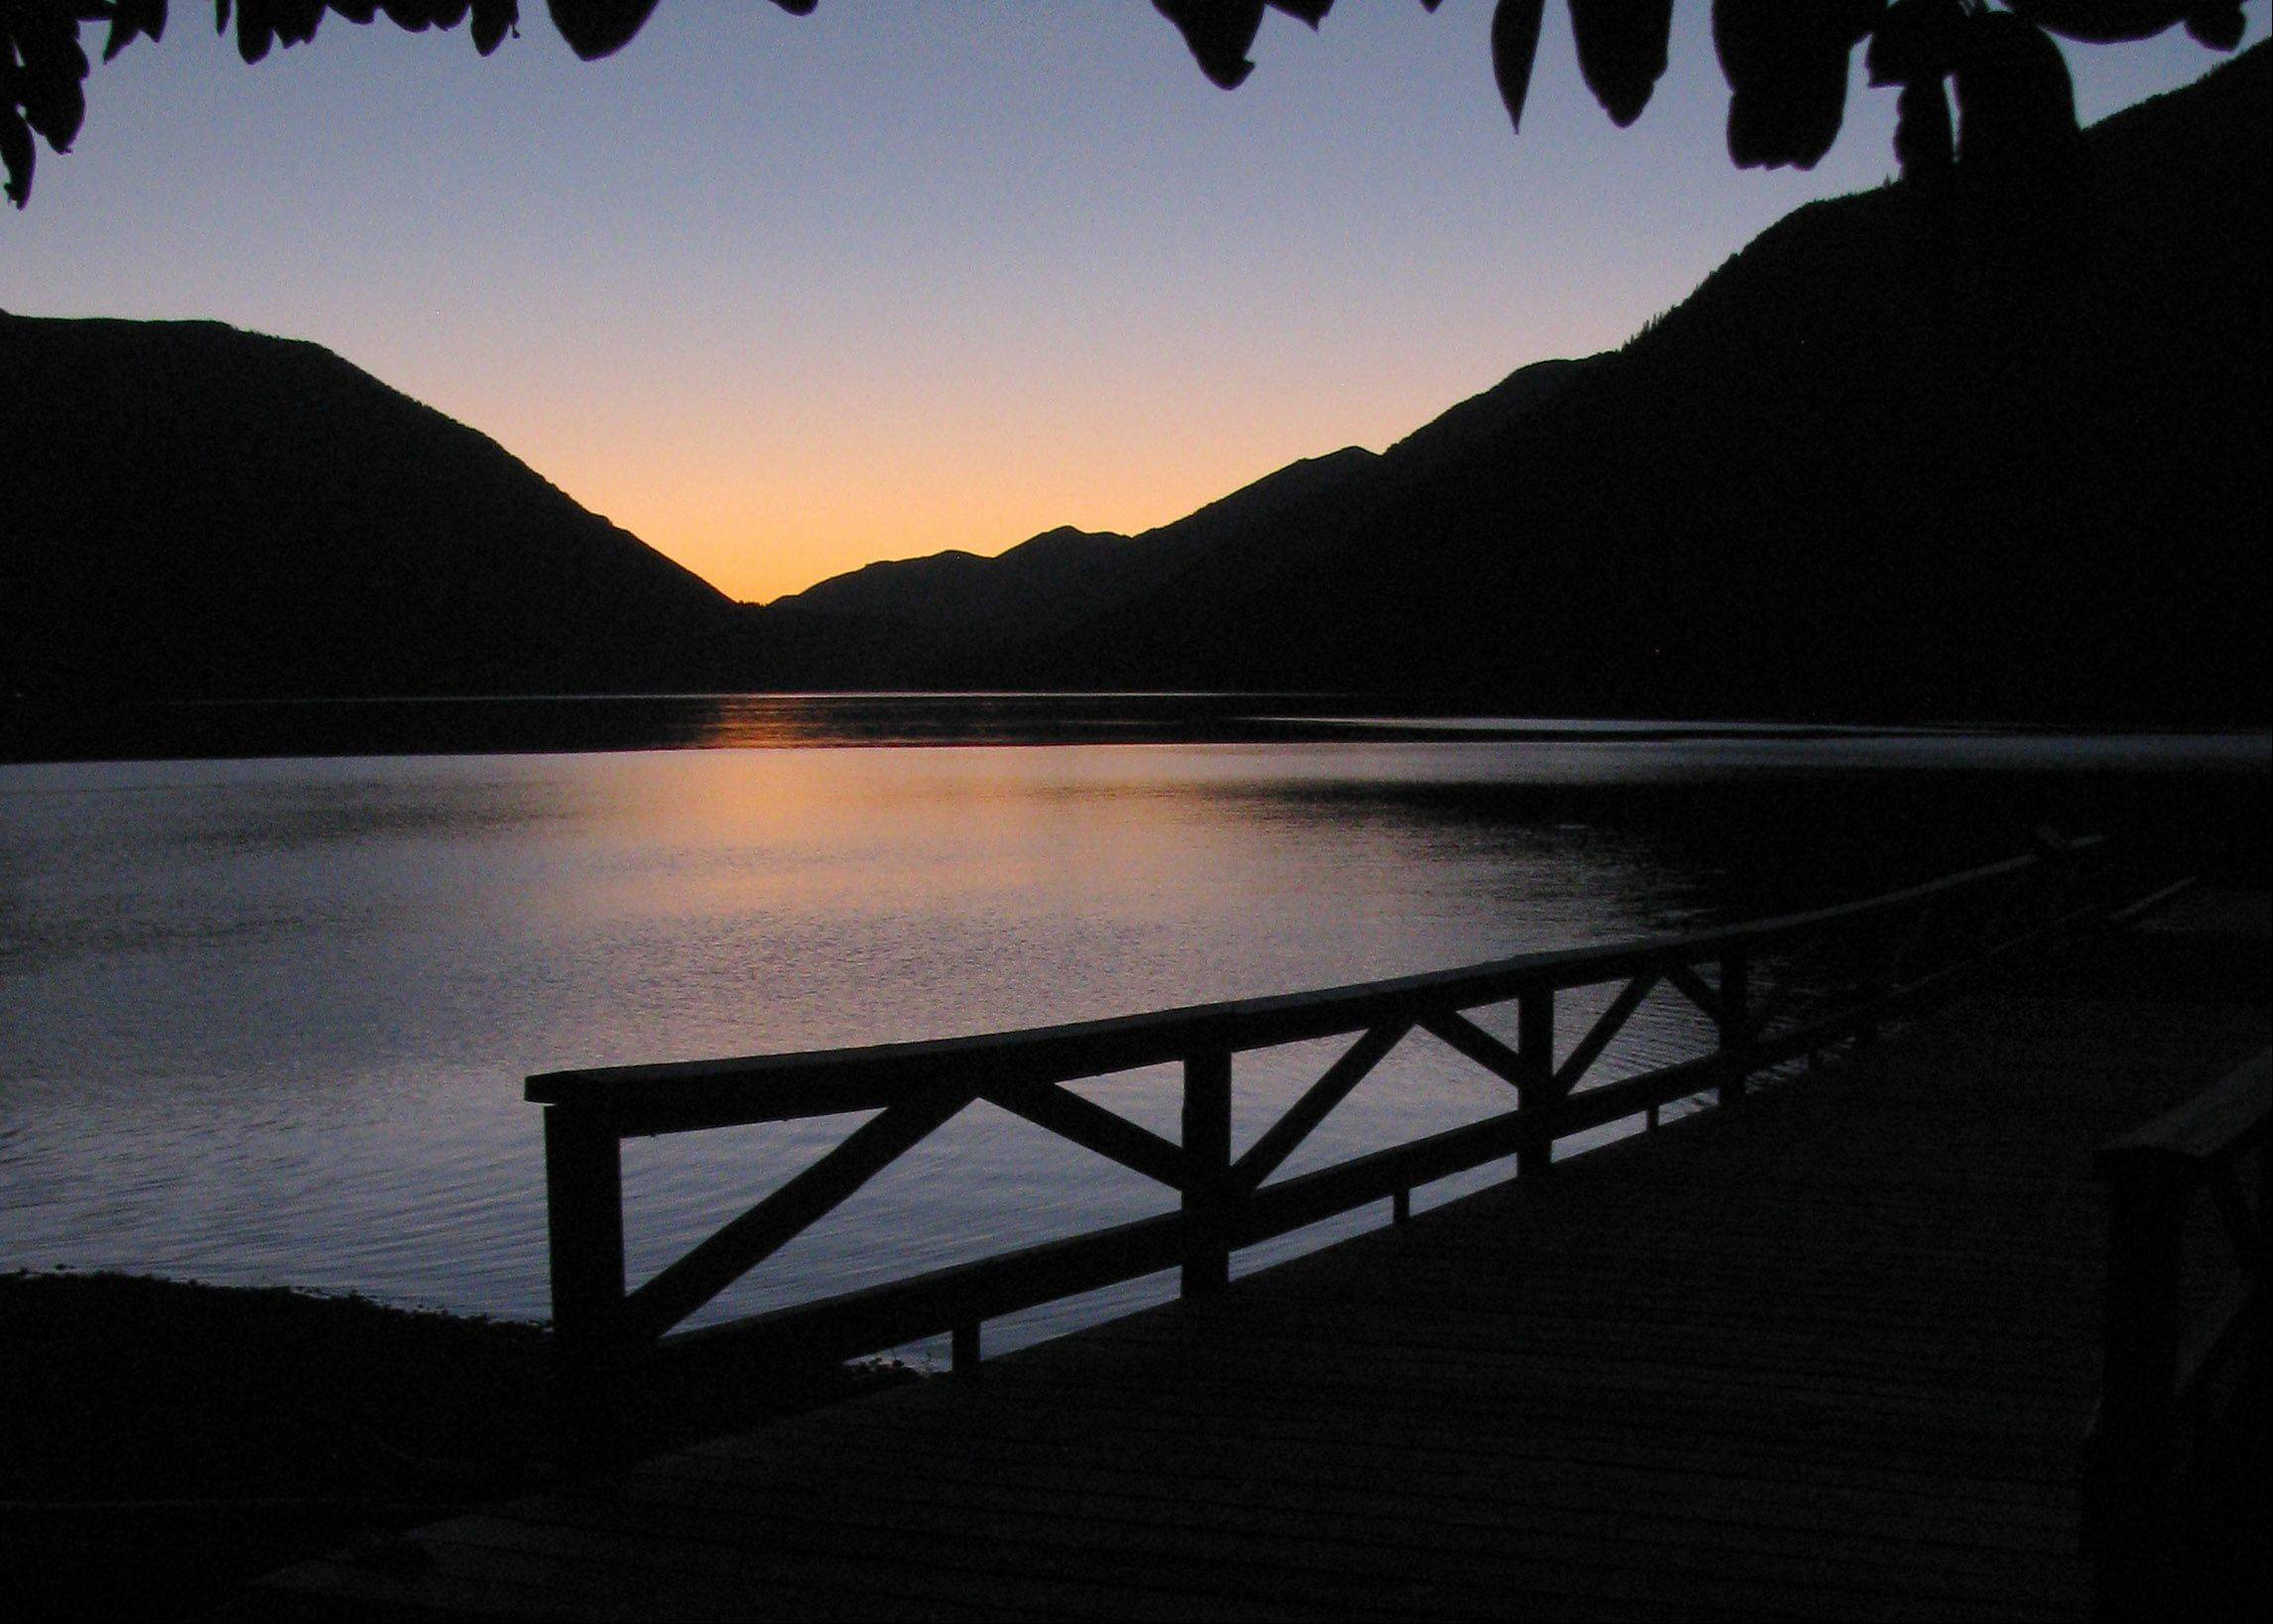 The last light of the setting sun places a serene calm over Lake Crescent in Washington State.